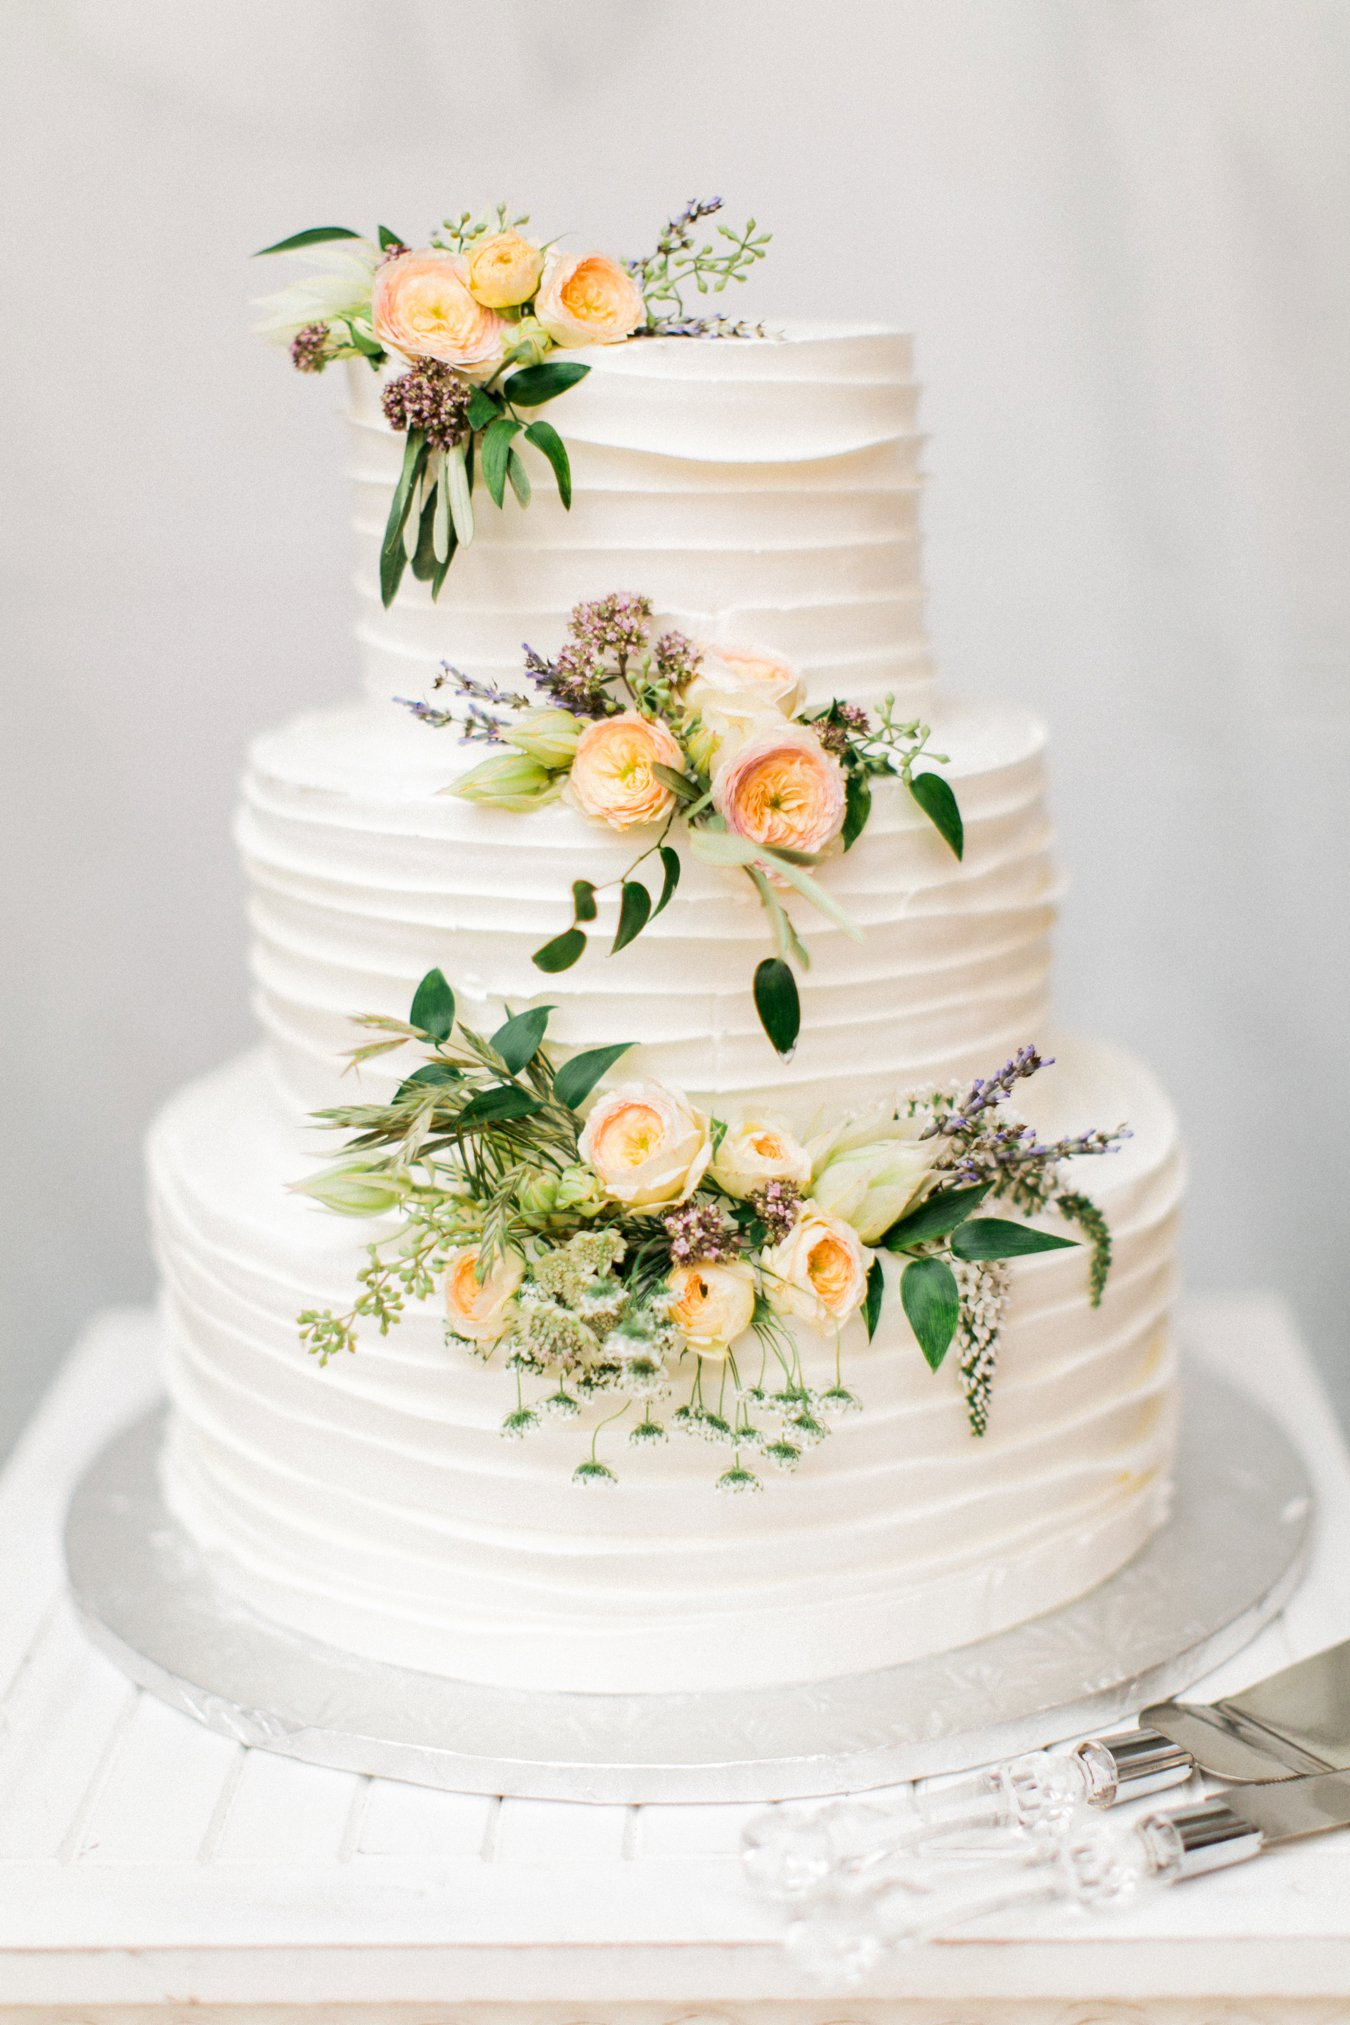 Cake with fresh flower decoration | Michigan Fine Art Wedding Photographer | Cory Weber Photography